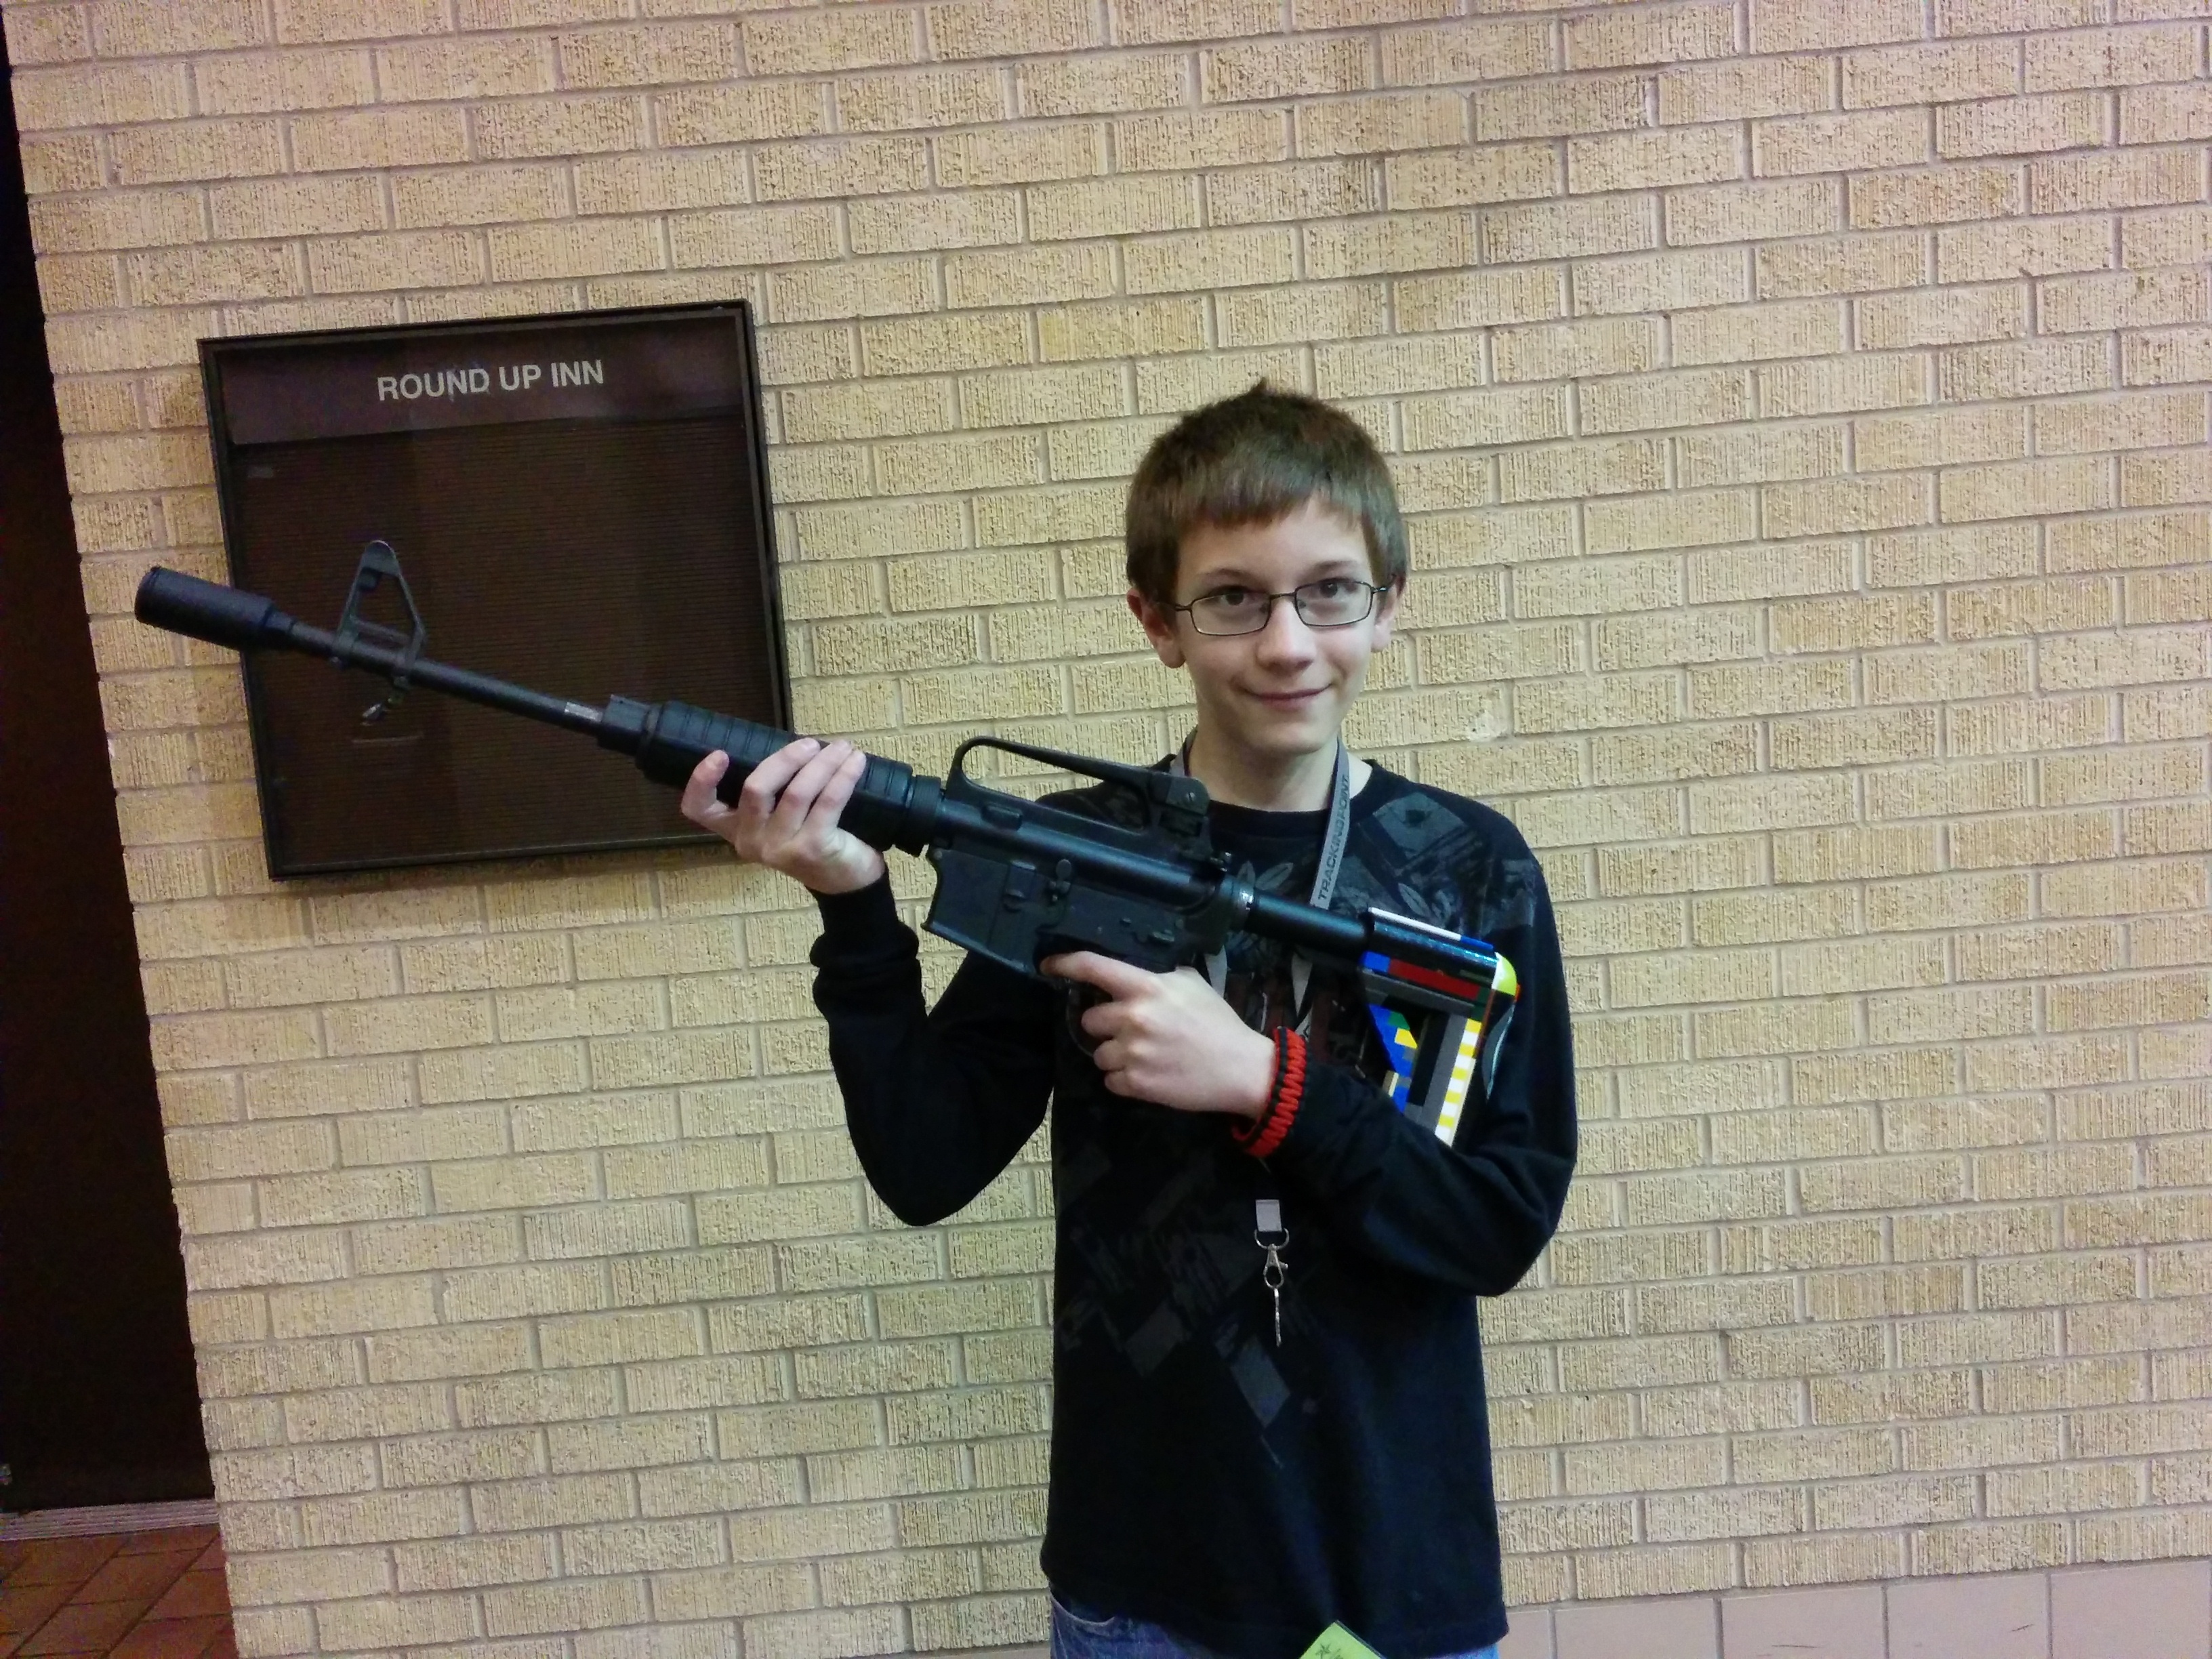 Grayson posing outside the Fort Worth gun show